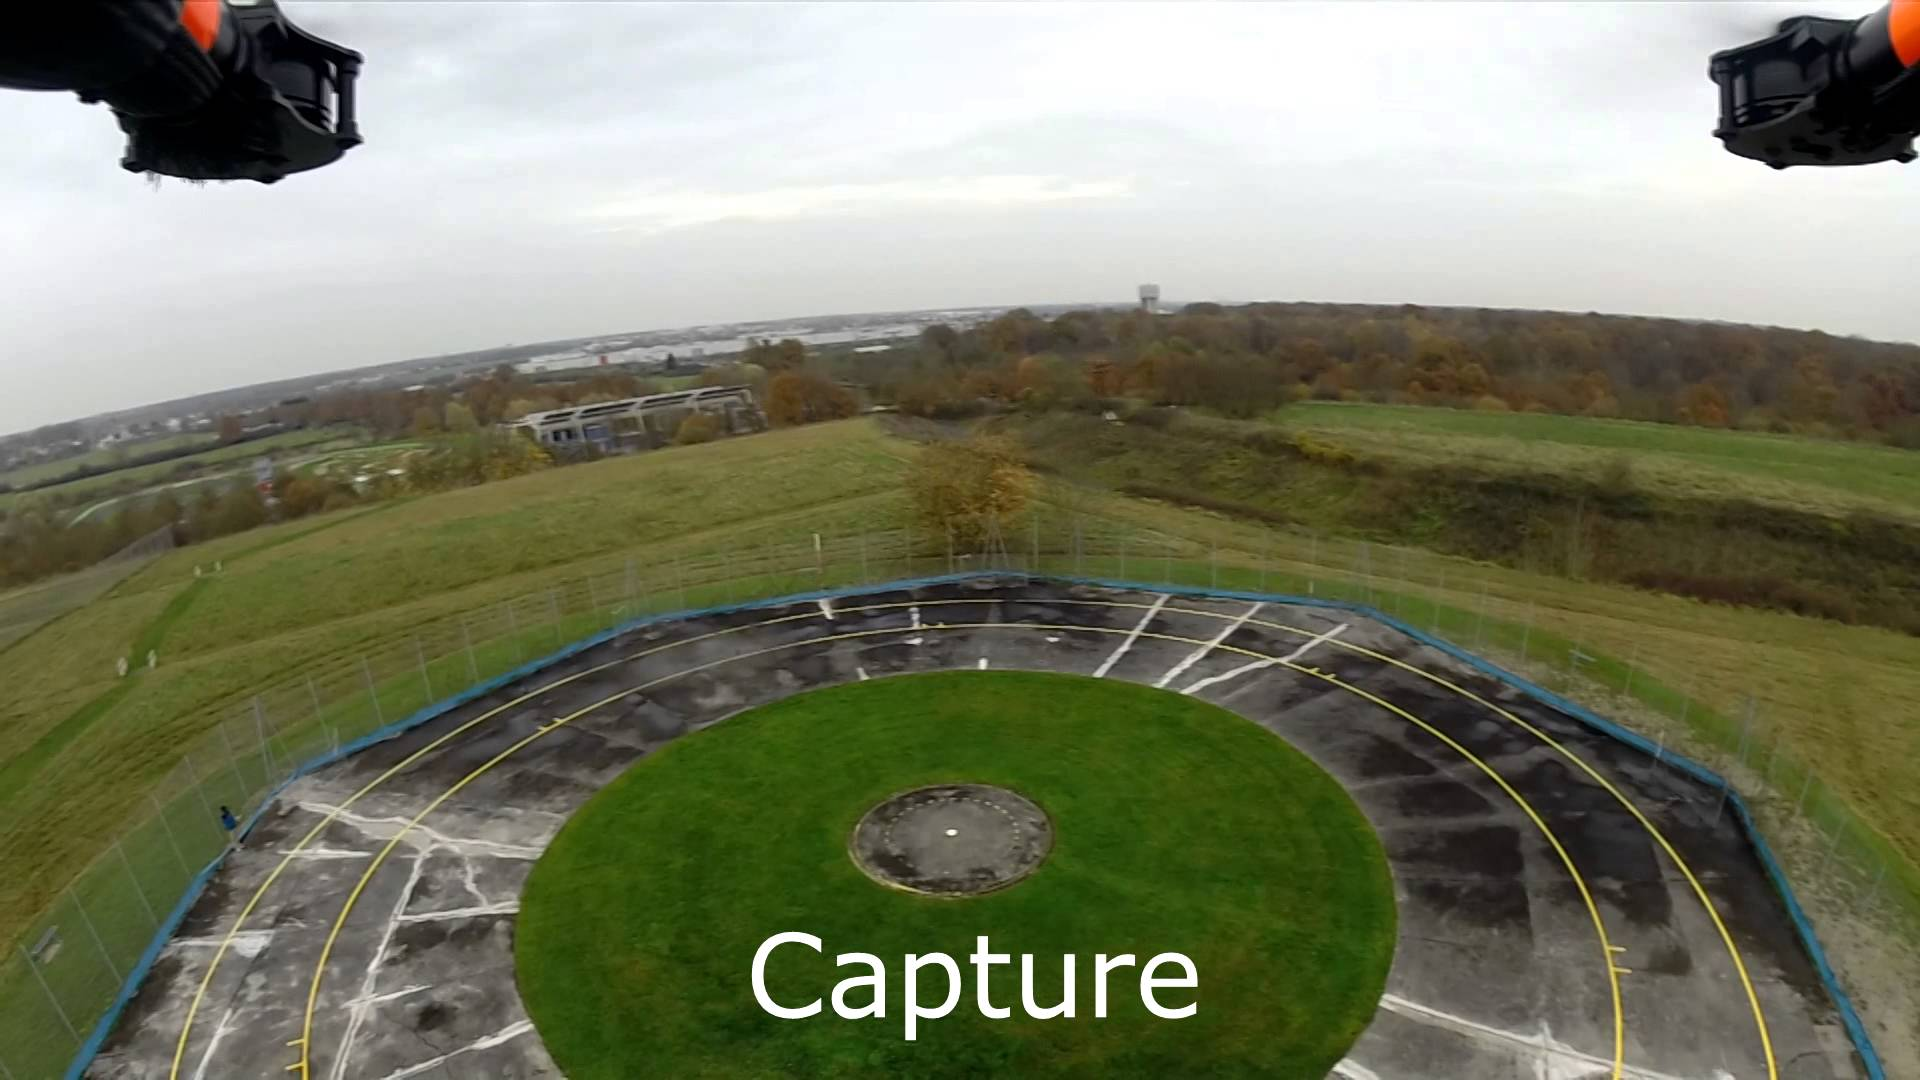 Groupe assmann Drone Capture, Credit: YouTube